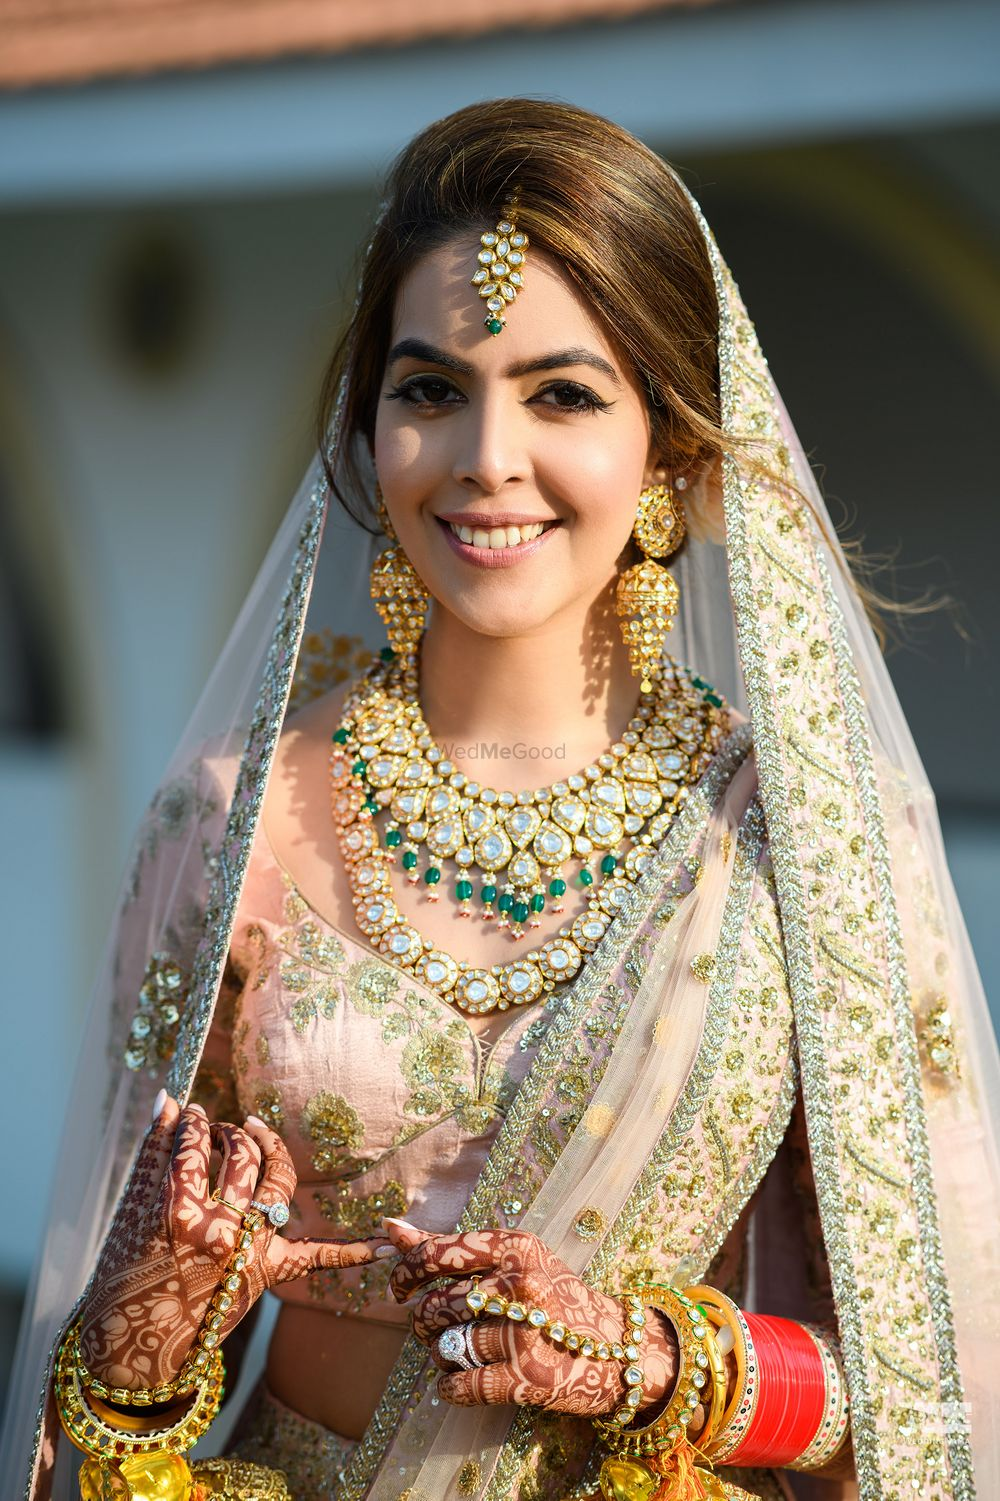 Photo of A close-up shot of a bride in a blush pink and gold lehenga for her wedding